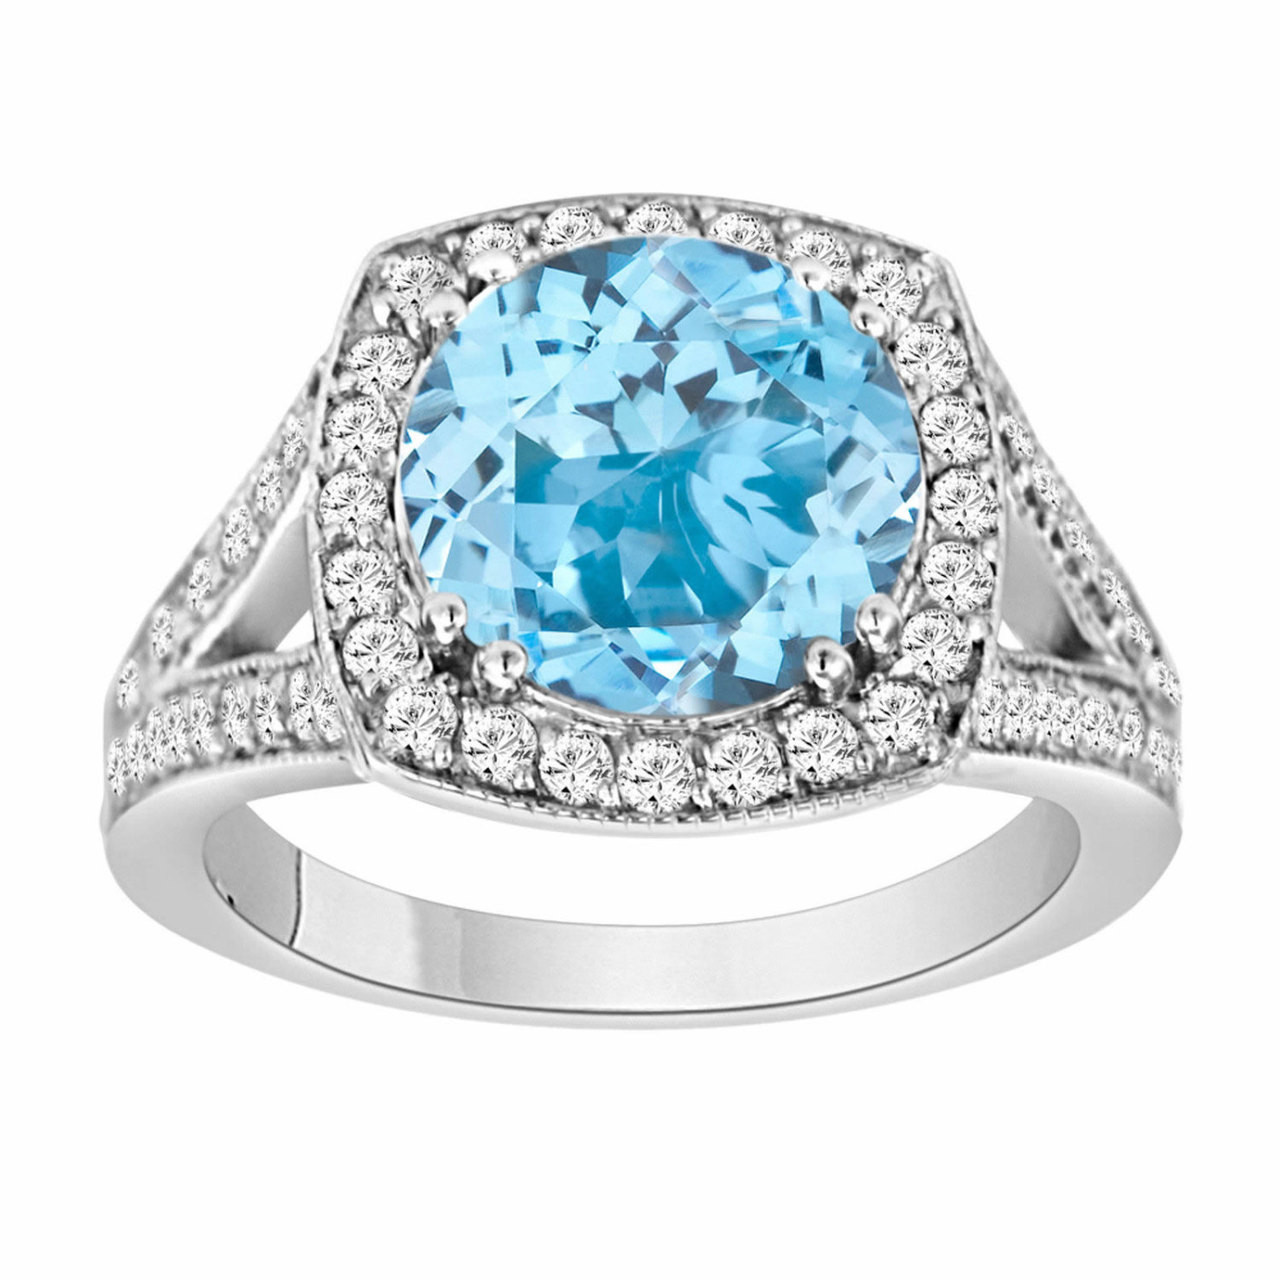 3 Carat Blue Topaz Engagement Ring Blue Topaz And Diamonds Wedding